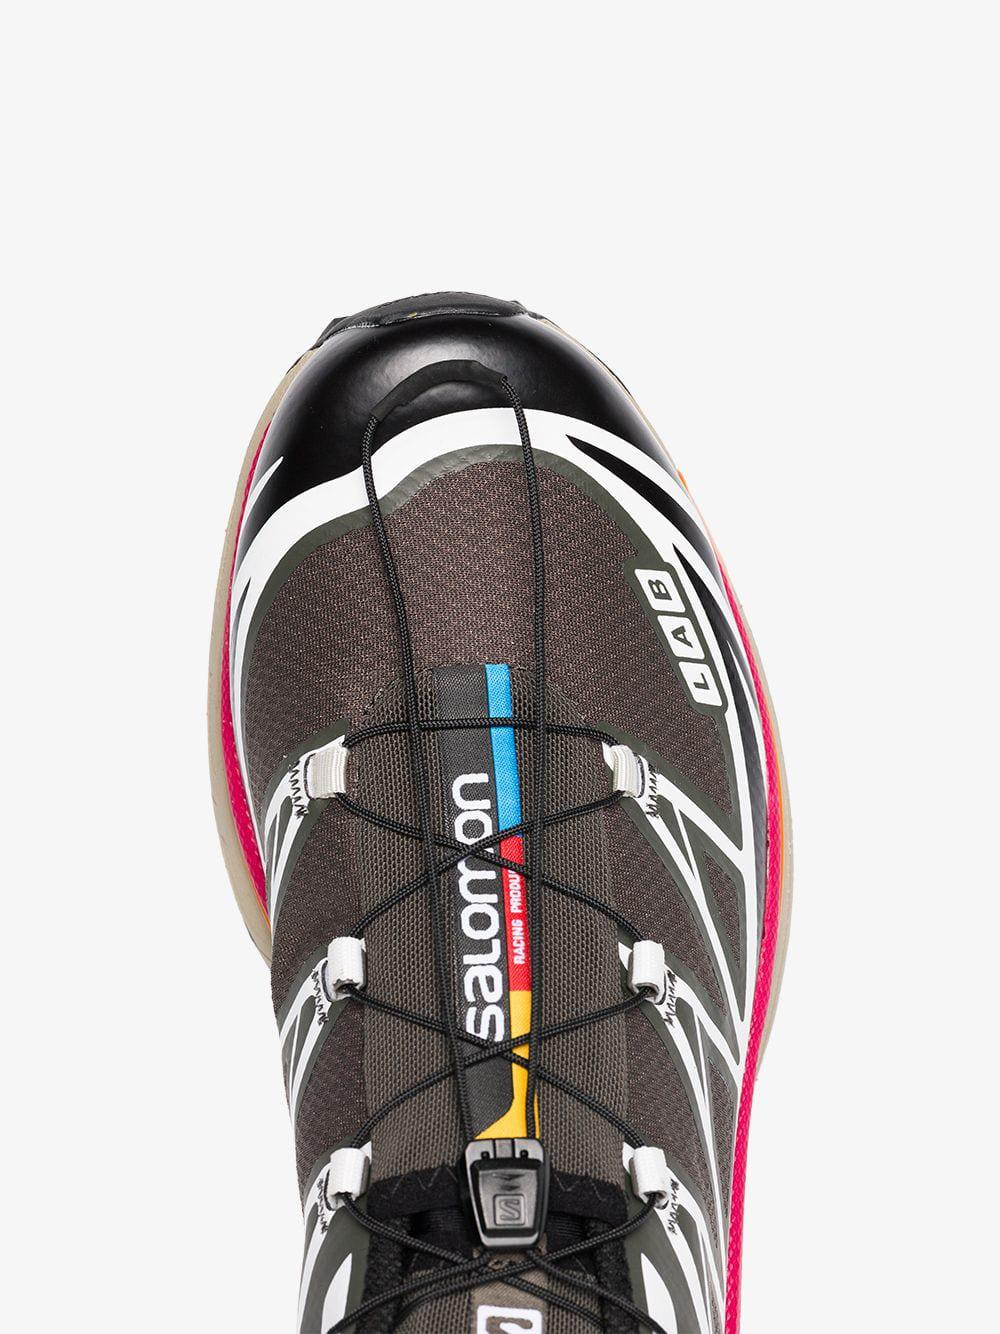 meet 3237a 02247 Salomon S LAB Grey, Pink And Orange Xt-6 Adv Sneakers in Black for ...